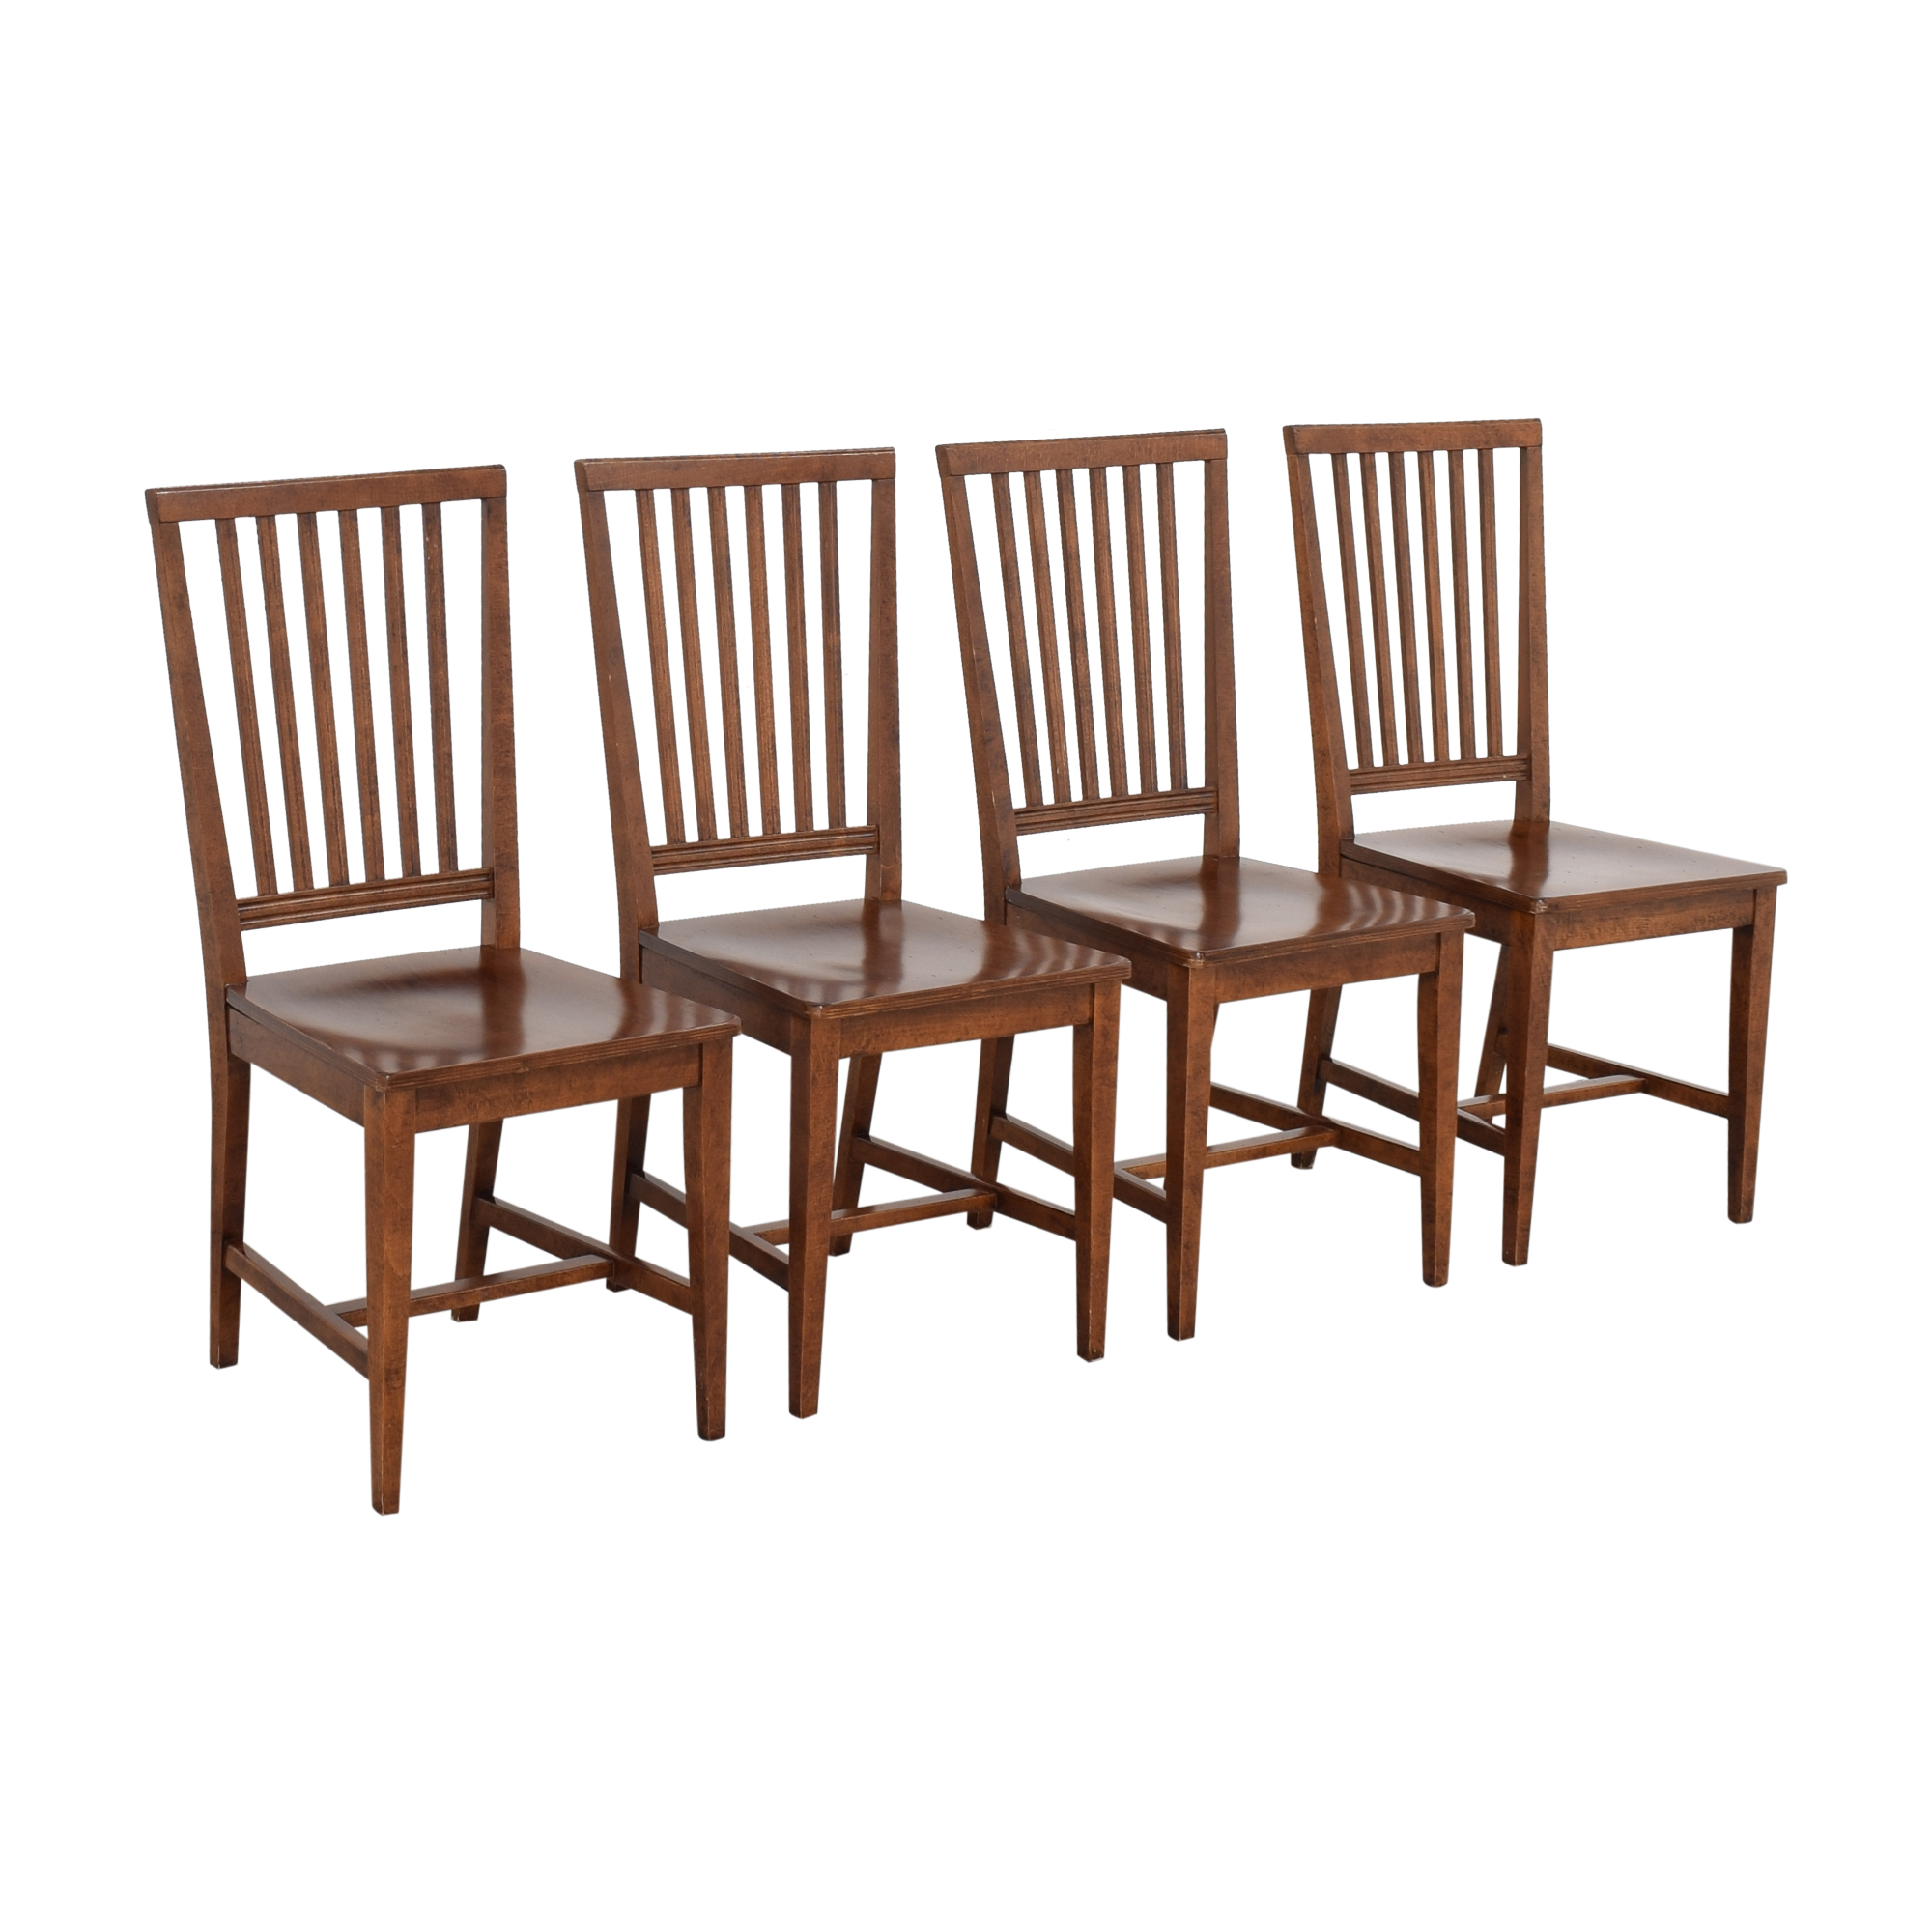 Crate & Barrel Crate & Barrel Village Nero Noche Dining Chairs on sale